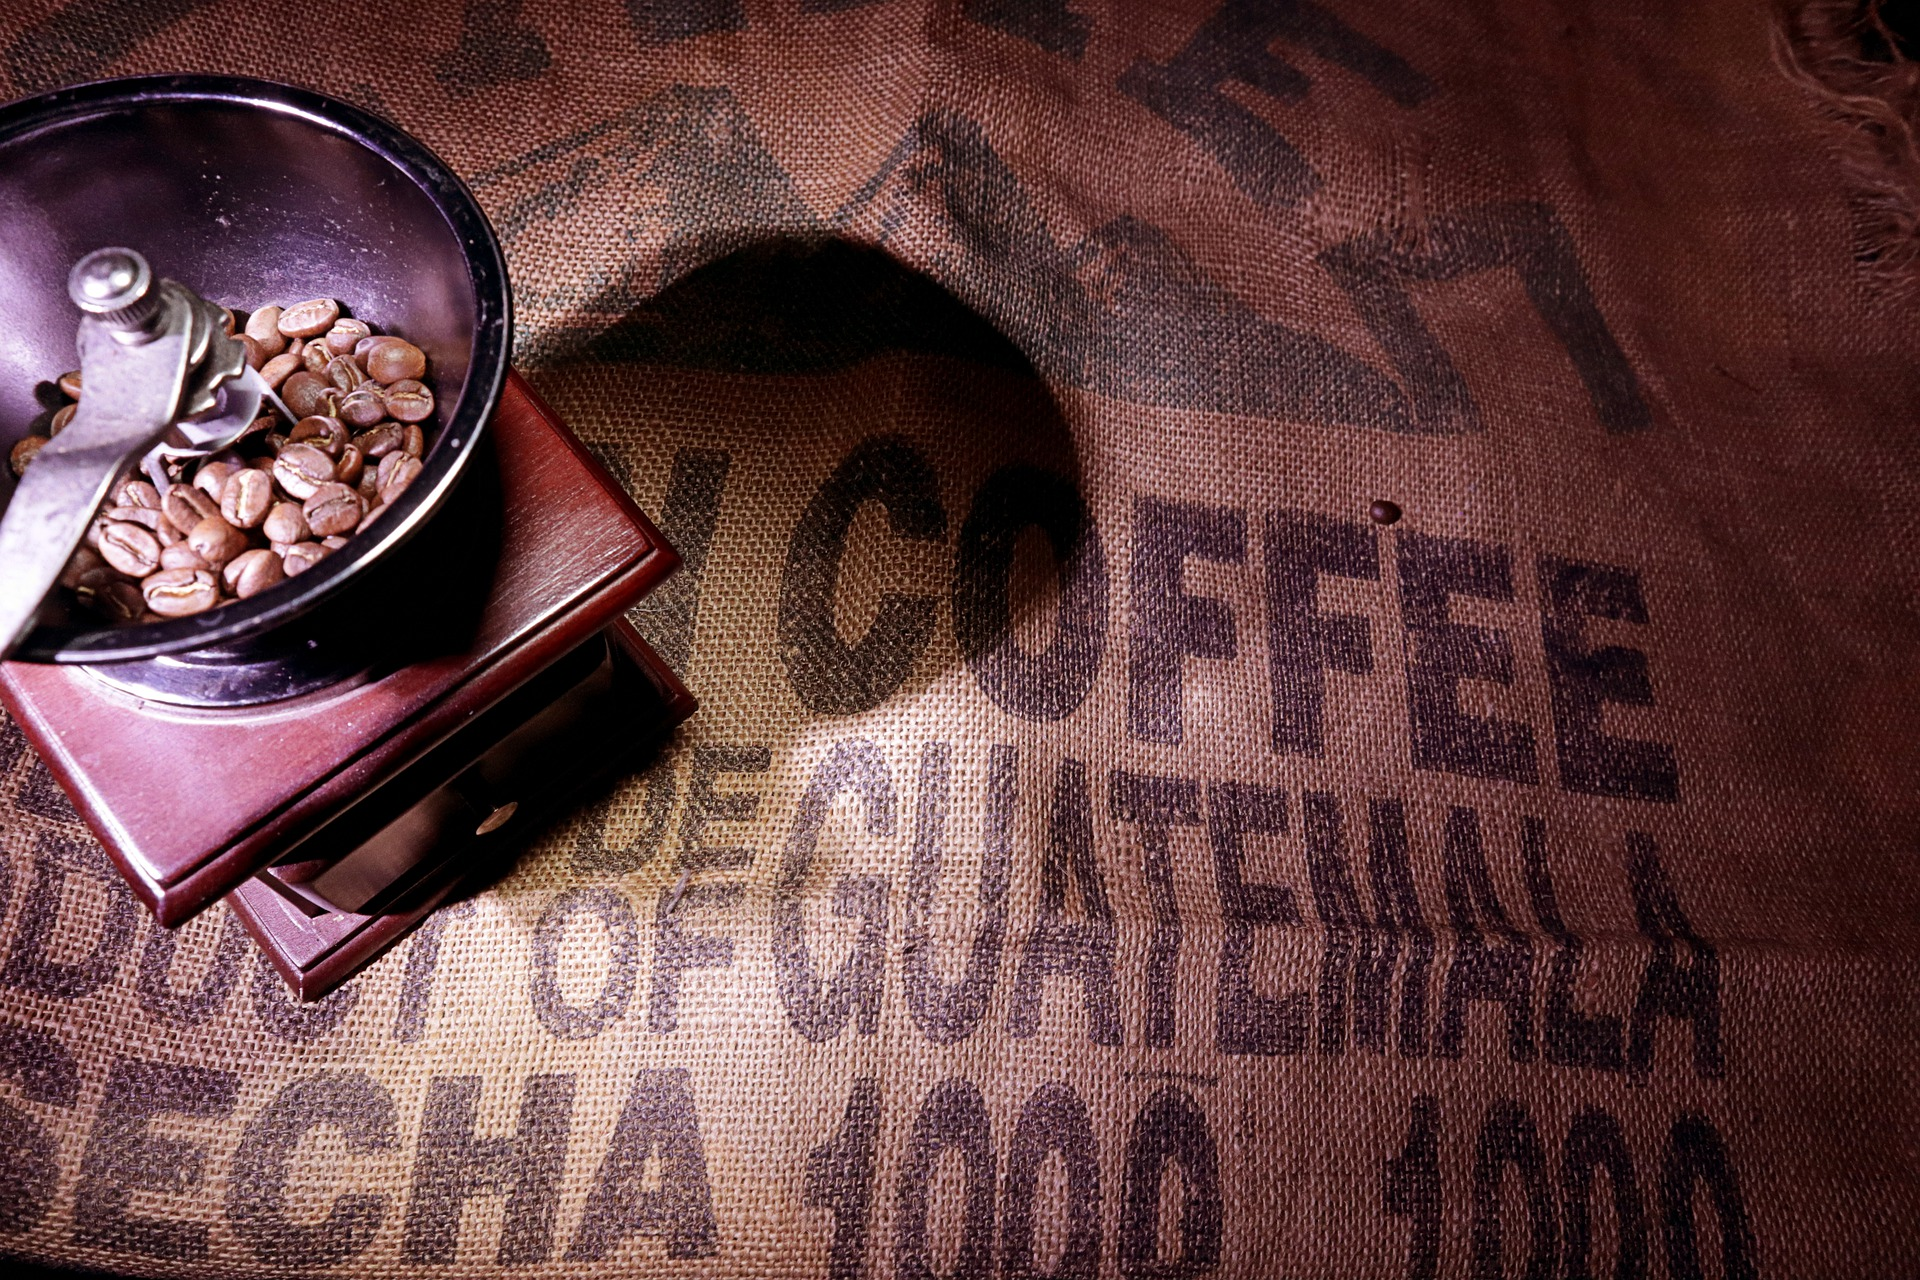 Guatemala coffee beans in a coffee grinder